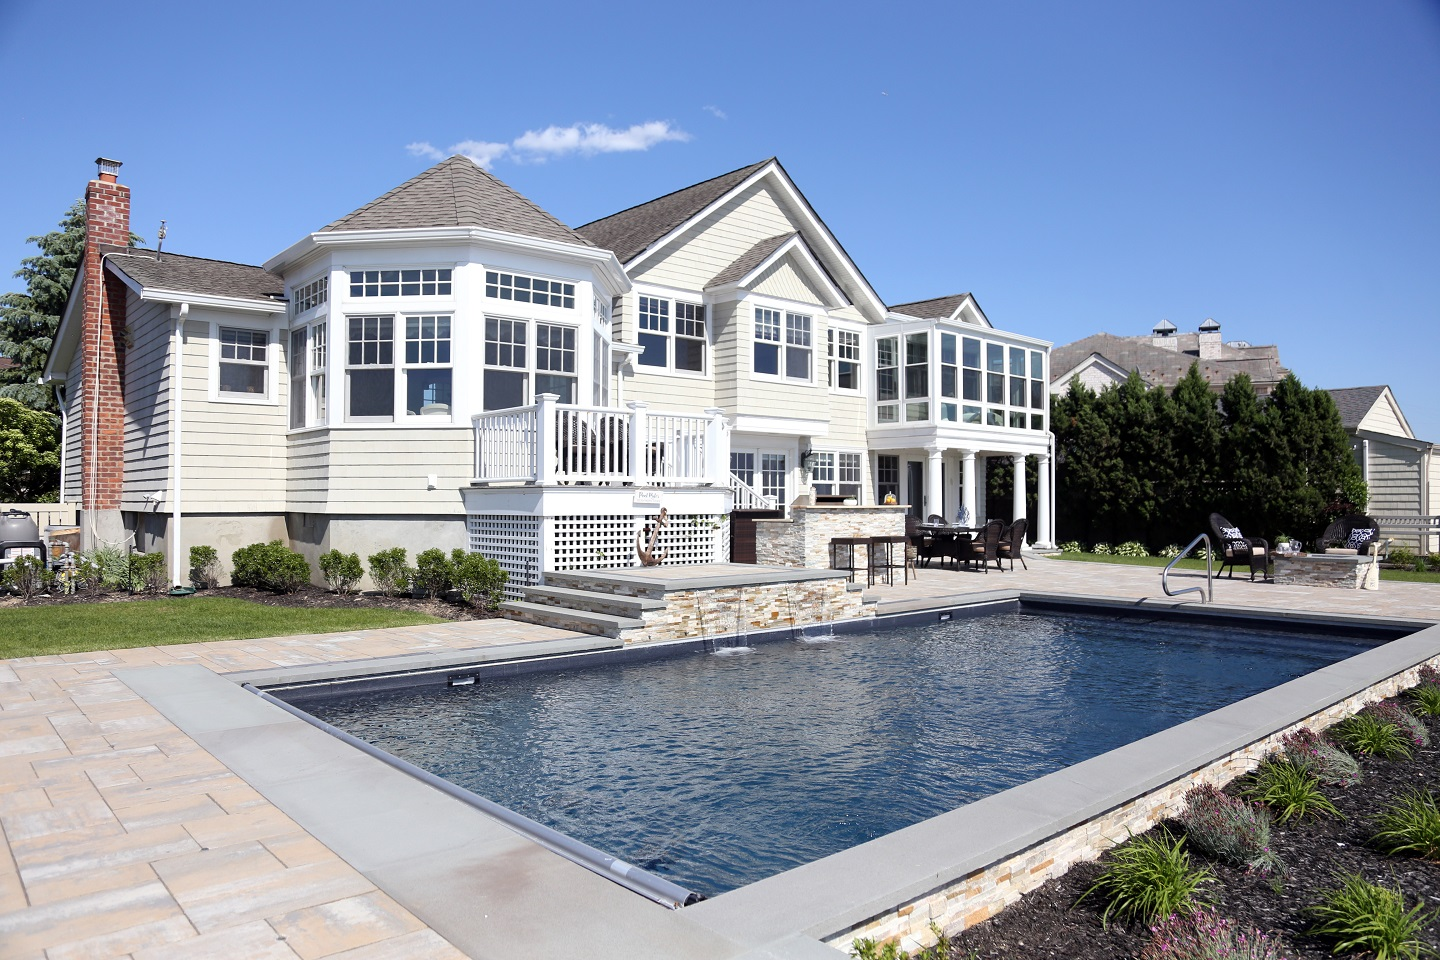 Patios with swimming pool in Massapequa NY